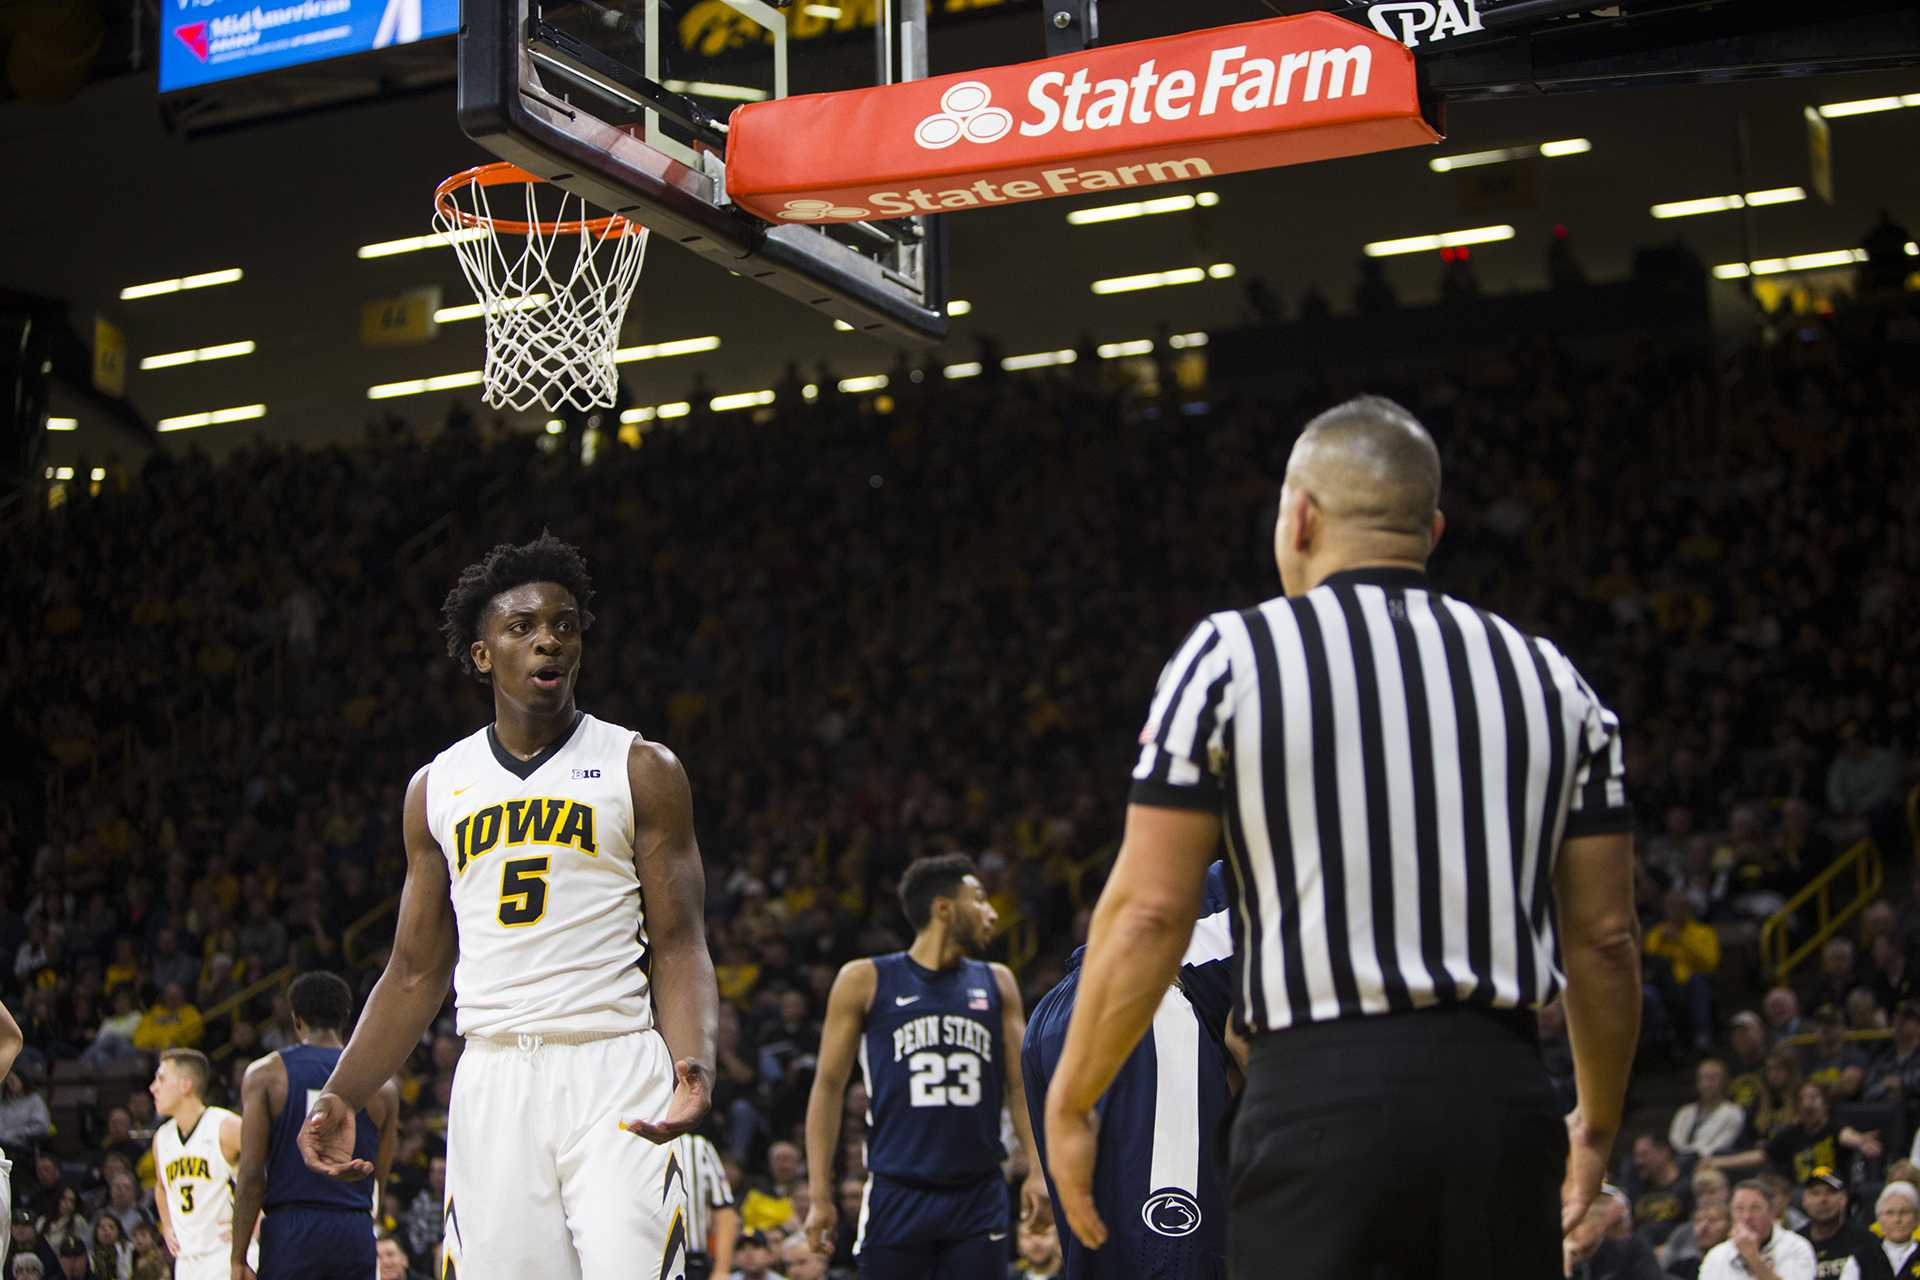 Iowa forward Tyler Cook reacts to a no-call against Penn State during an Iowa/Penn State men's basketball game in Carver-Hawkeye Arena on Saturday, Dec. 2, 2017. The Nittany Lions defeated the Hawkeyes, 77-73. (Joseph Cress/The Daily Iowan)